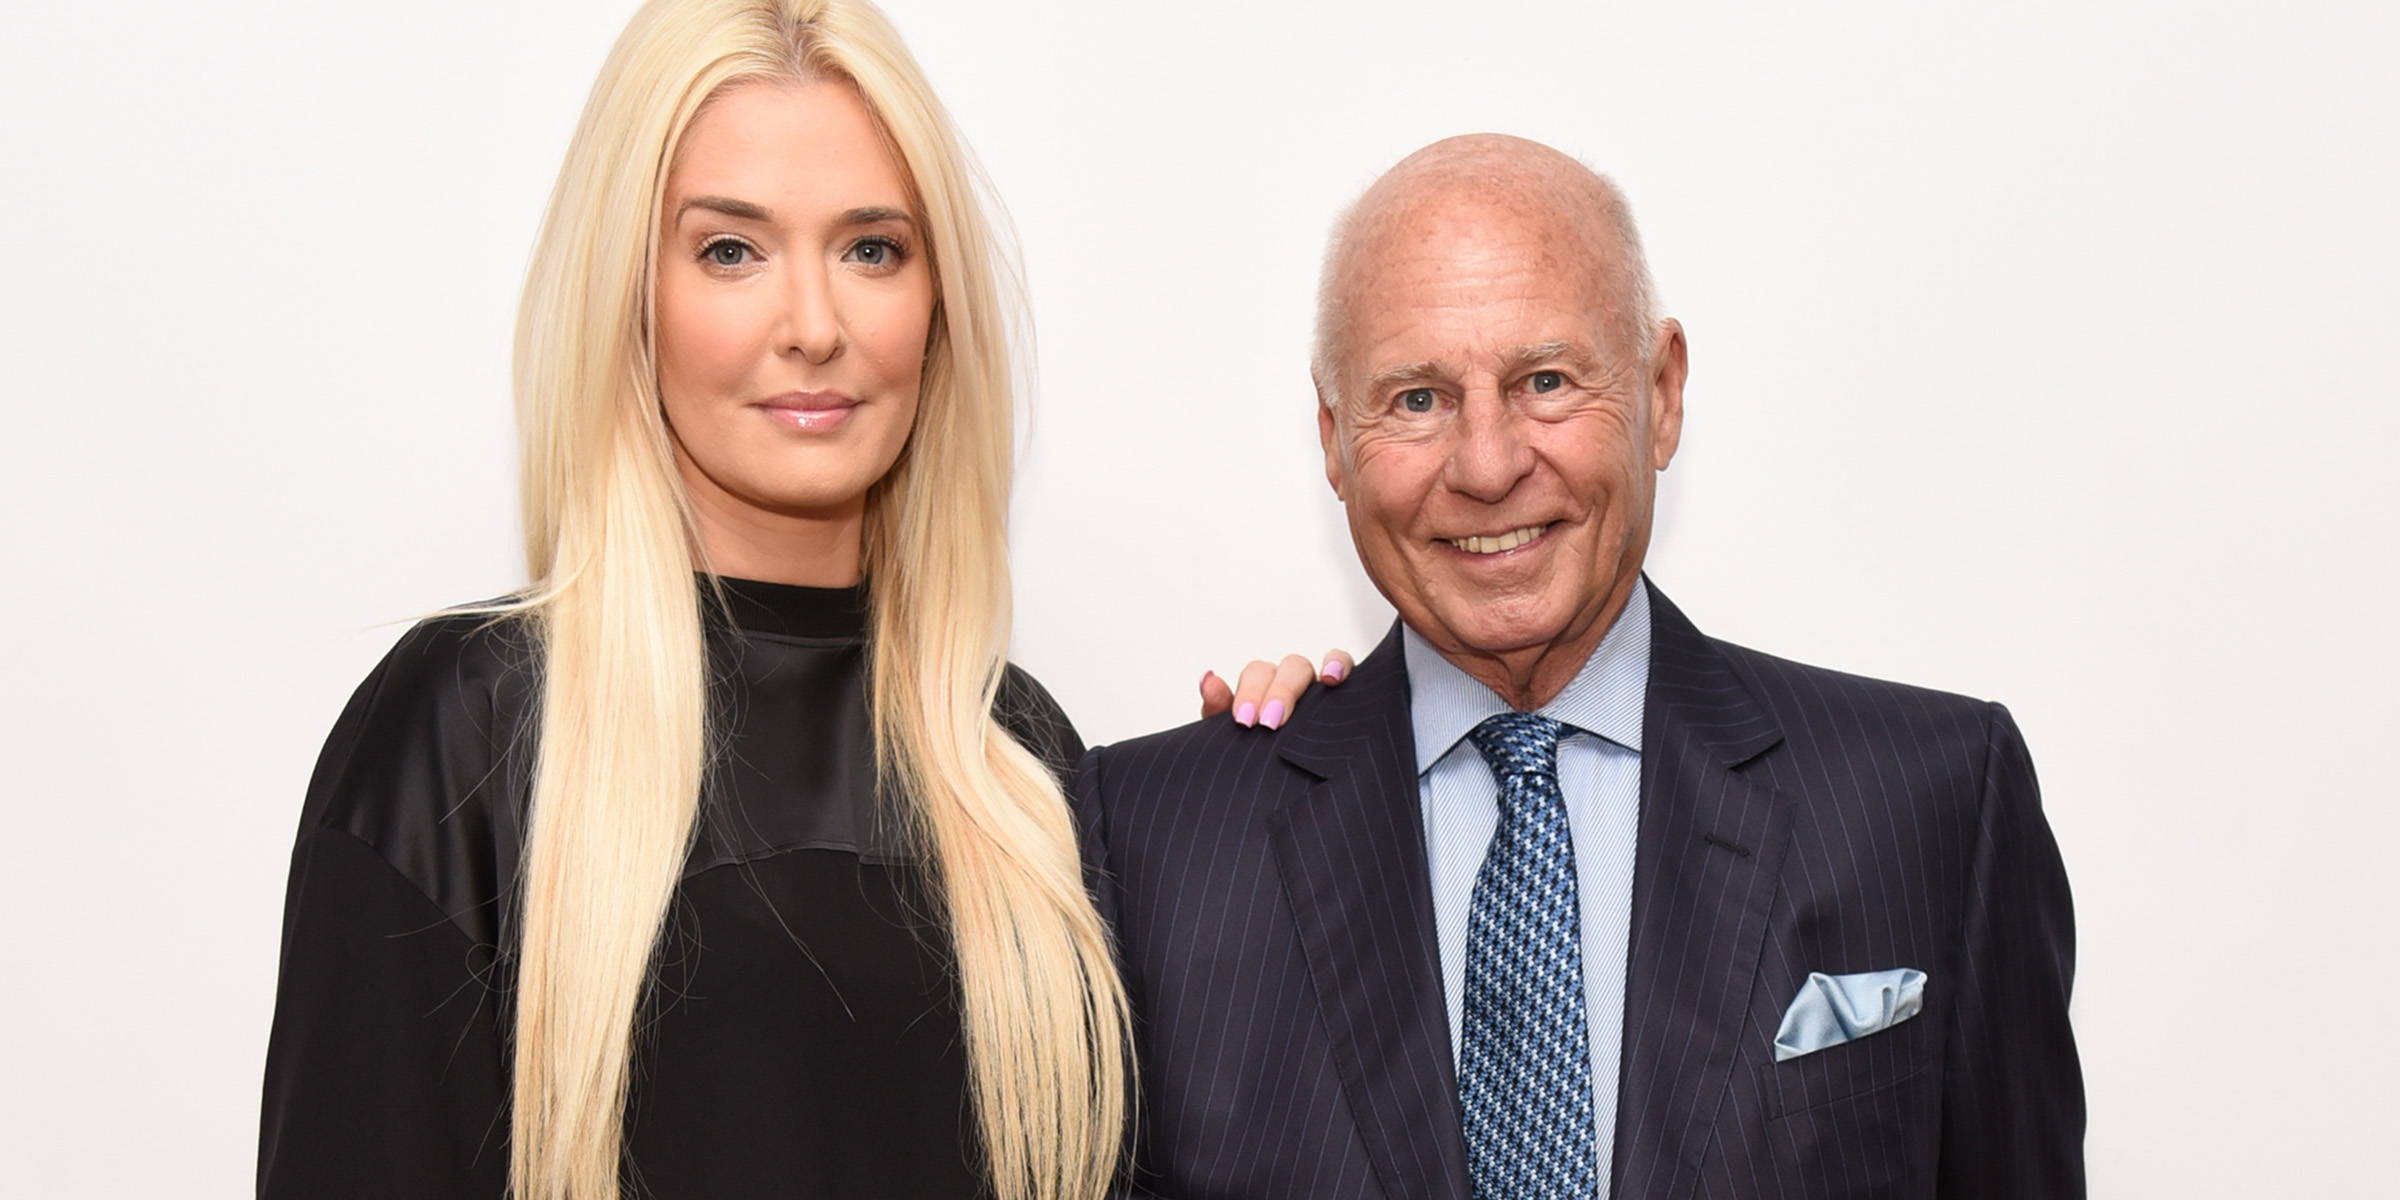 What S The Story Behind Erika Jayne And Tom Girardi S Legal Battles